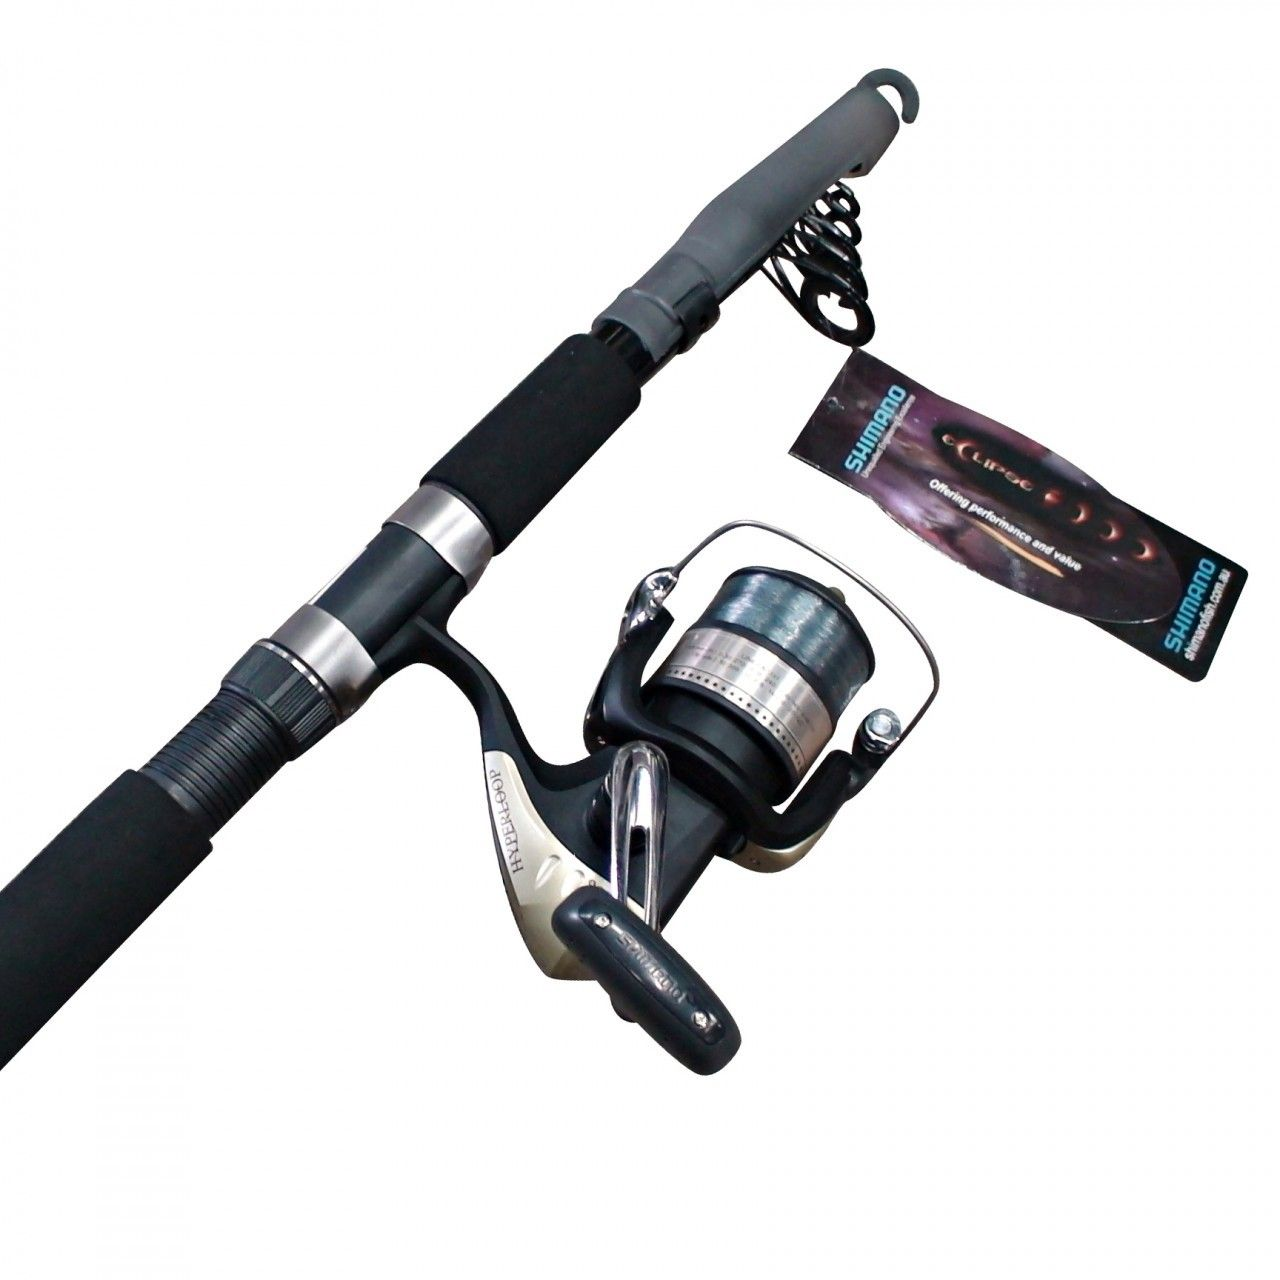 Best Telescopic Fishing Rod For Beginners And Experts Telescopic Fishing Rod Fishing Rods And Reels Rod And Reel